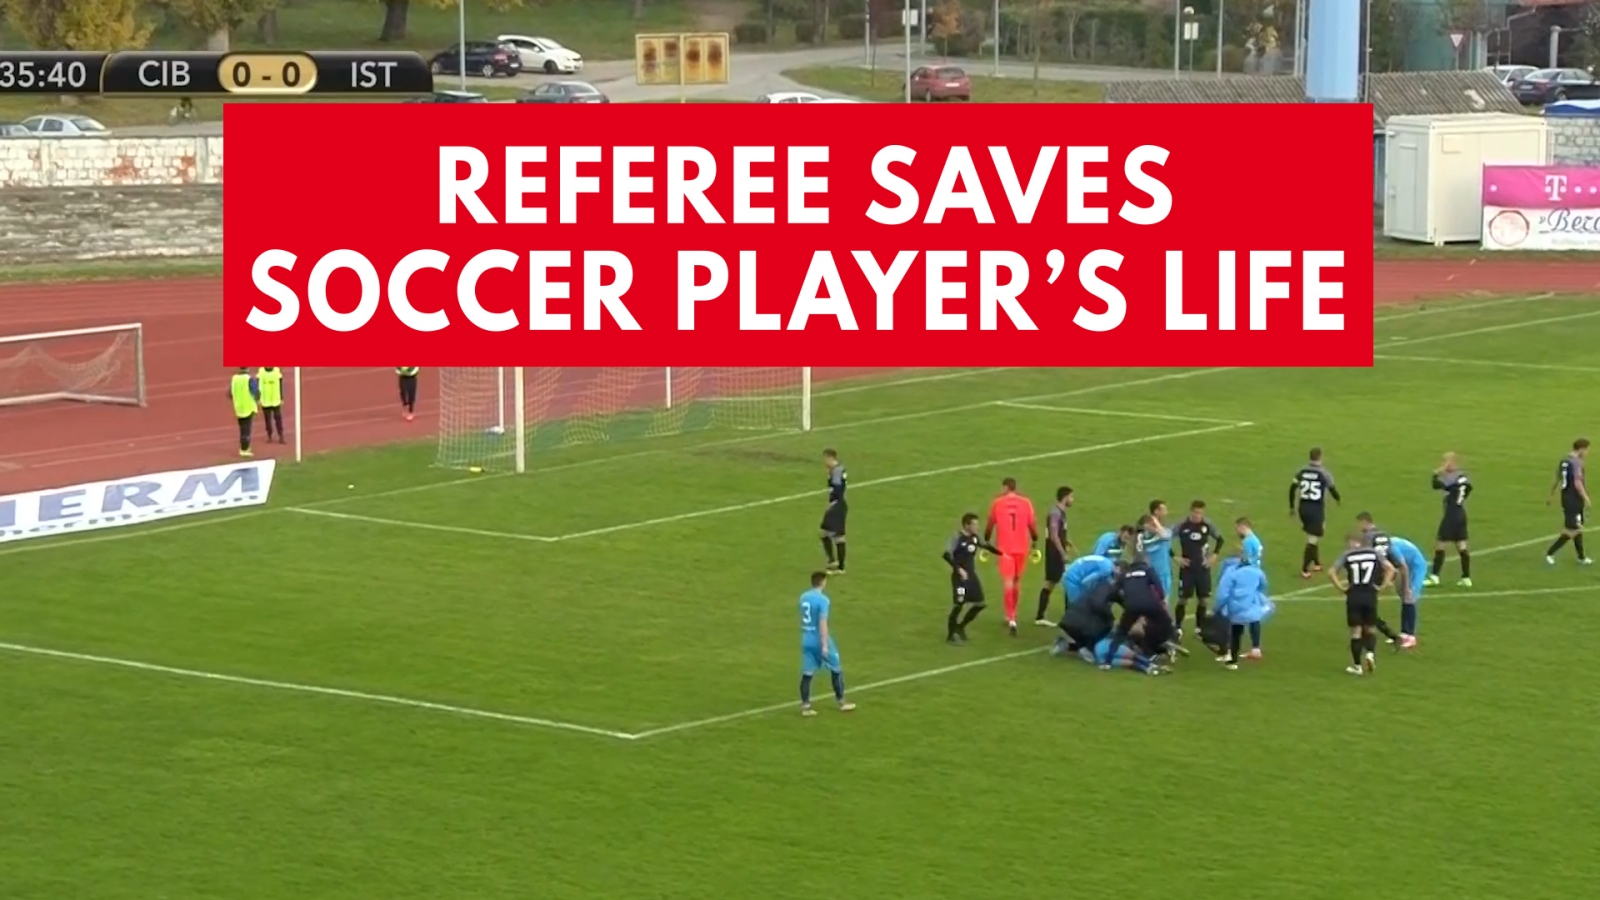 referee-saves-soccer-players-life